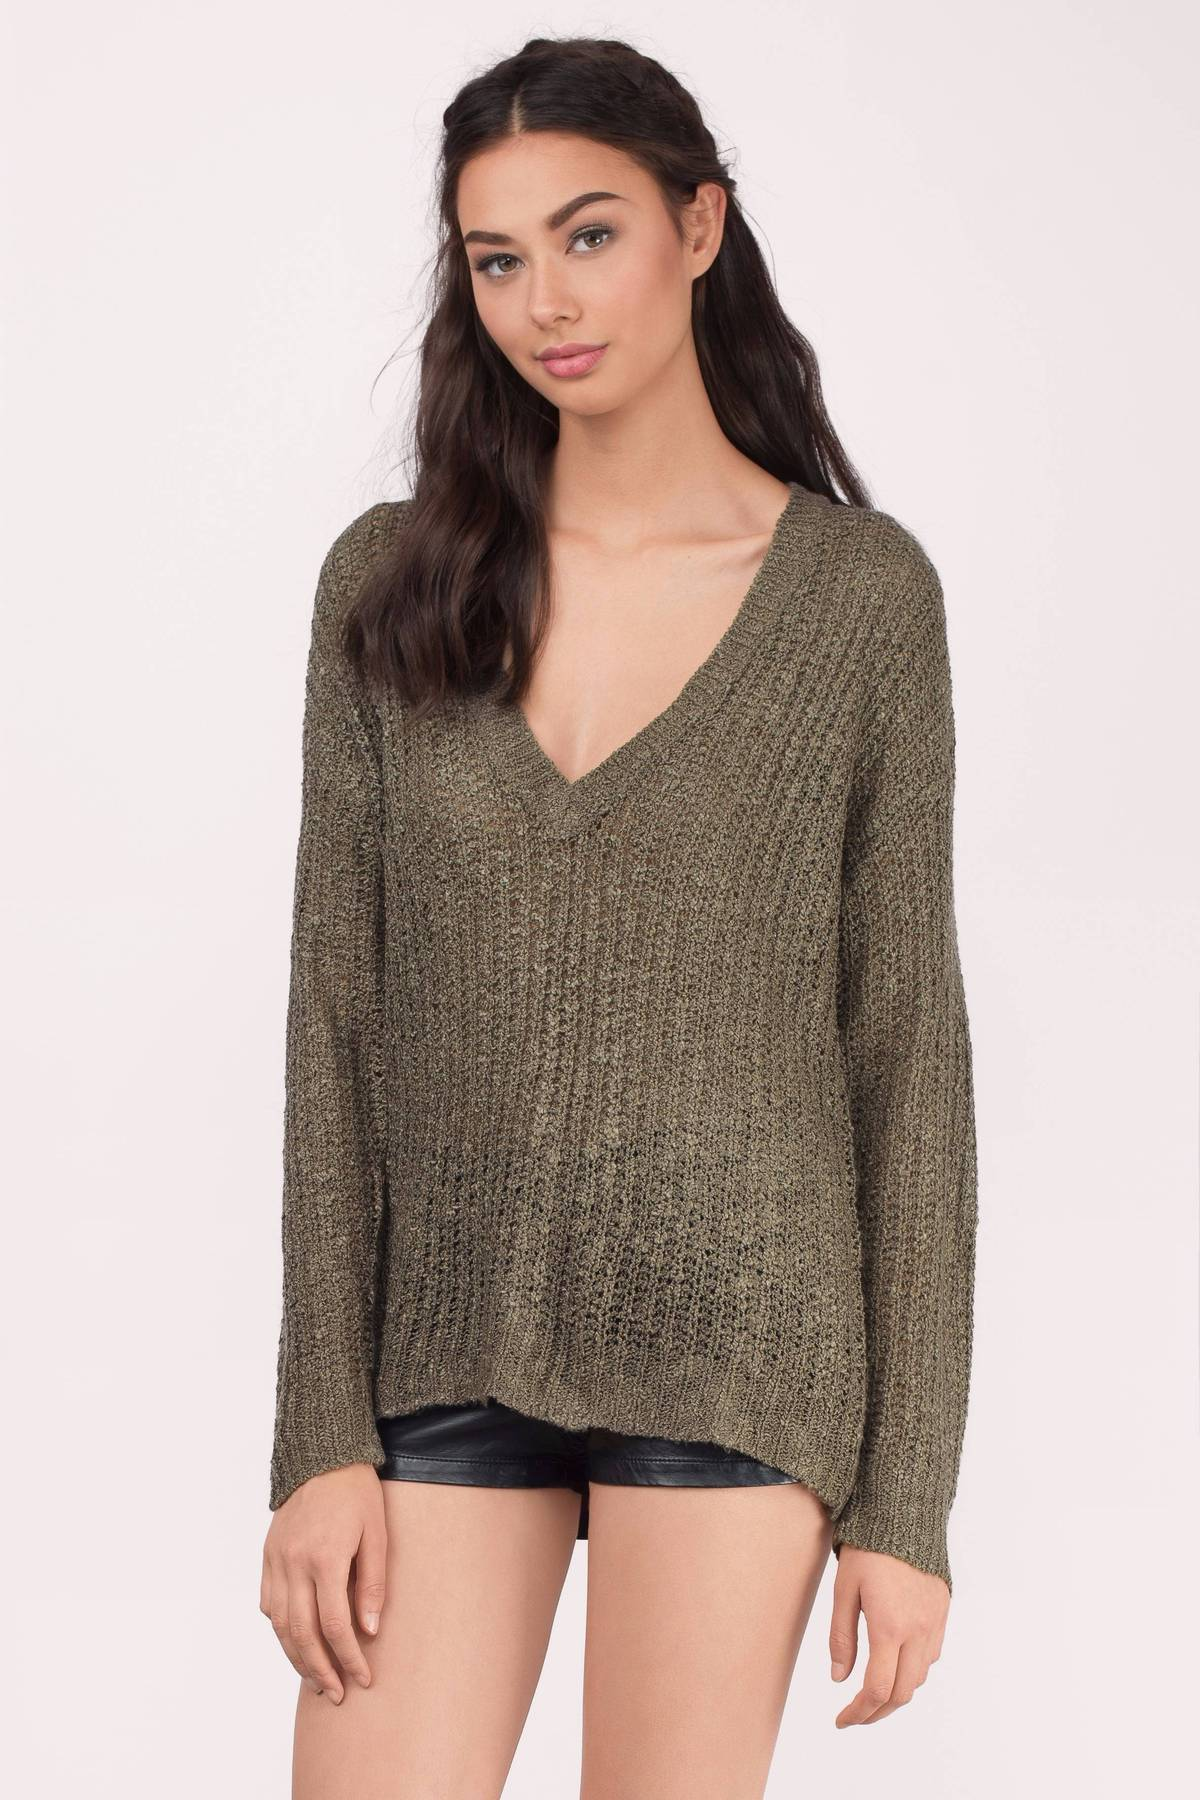 Cute Olive Sweater - Green Sweater - V Neck Sweater - $25.00